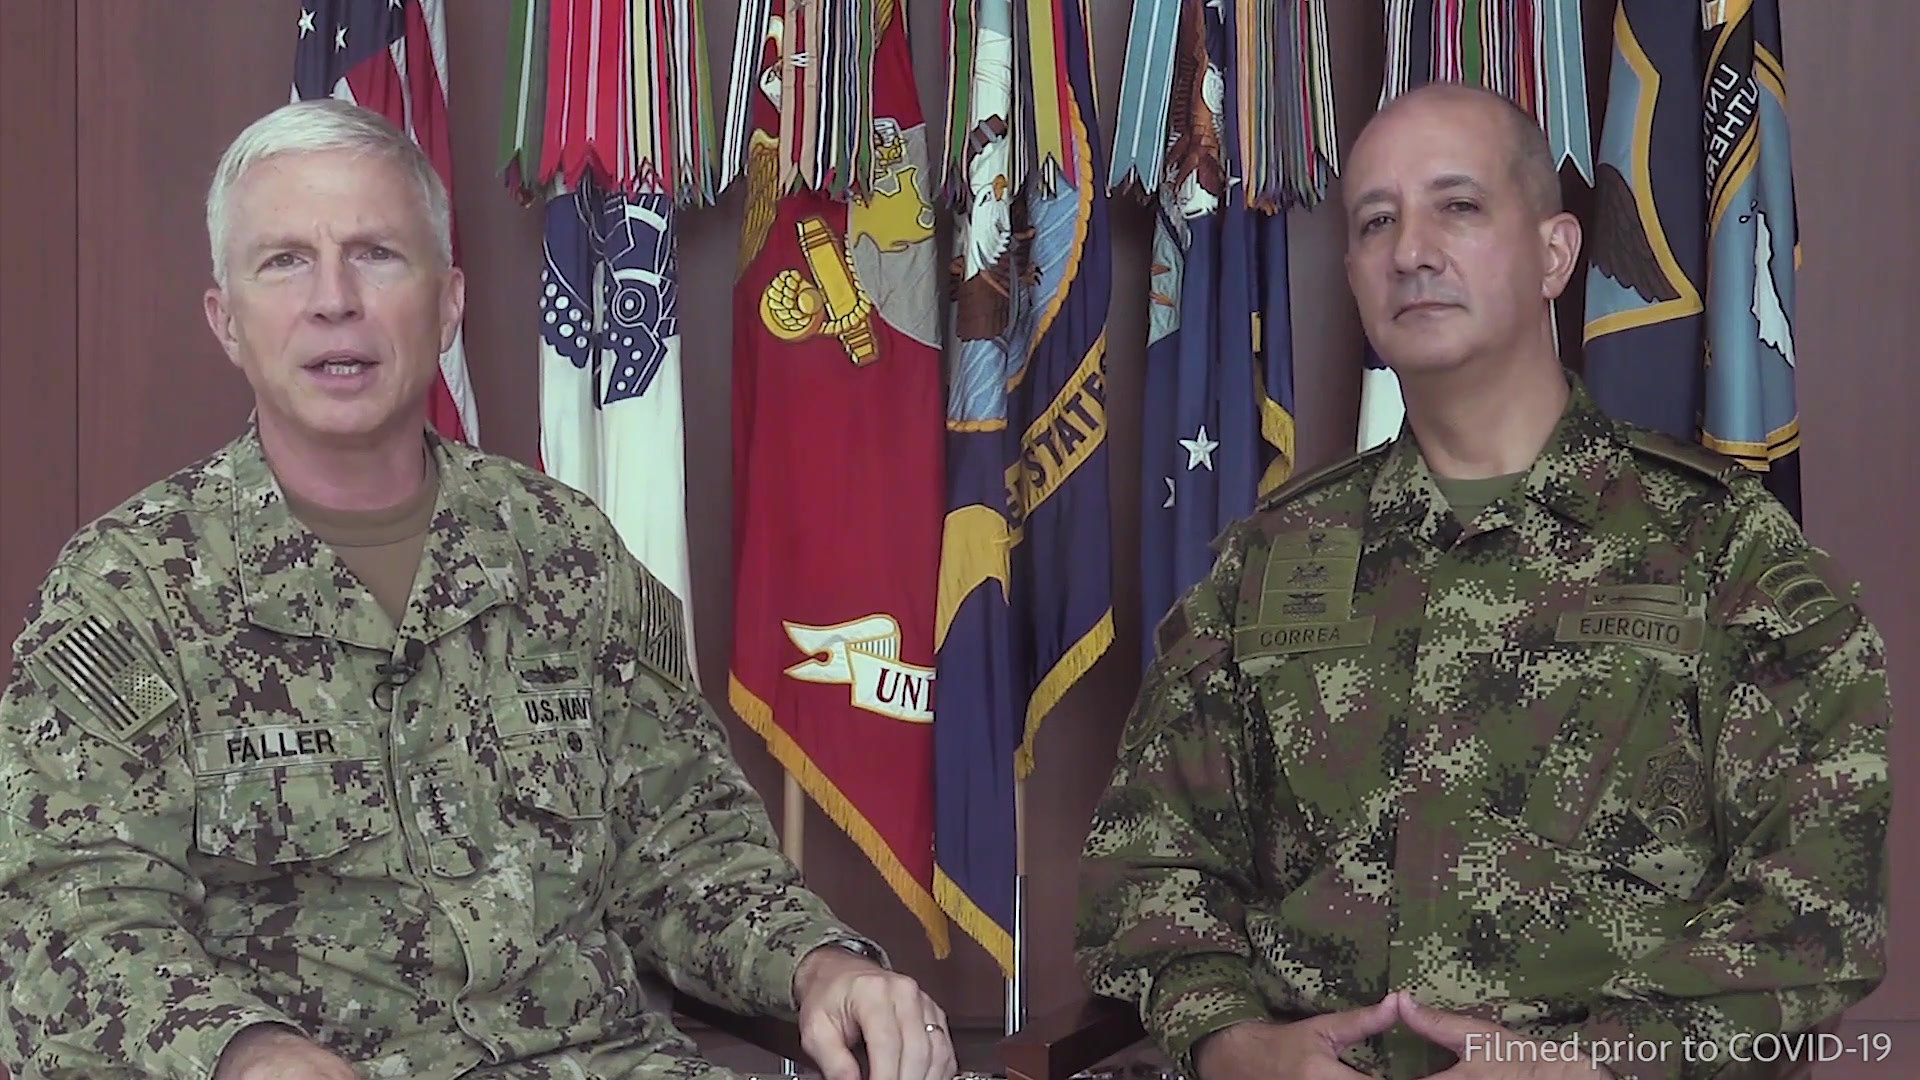 Video with comments from Adm. Craig Faller and Colombia Brig. Gen. Juan Carlos Correa Consuegra, about the importance of strengthening partnerships in Latin America and the Caribbean.